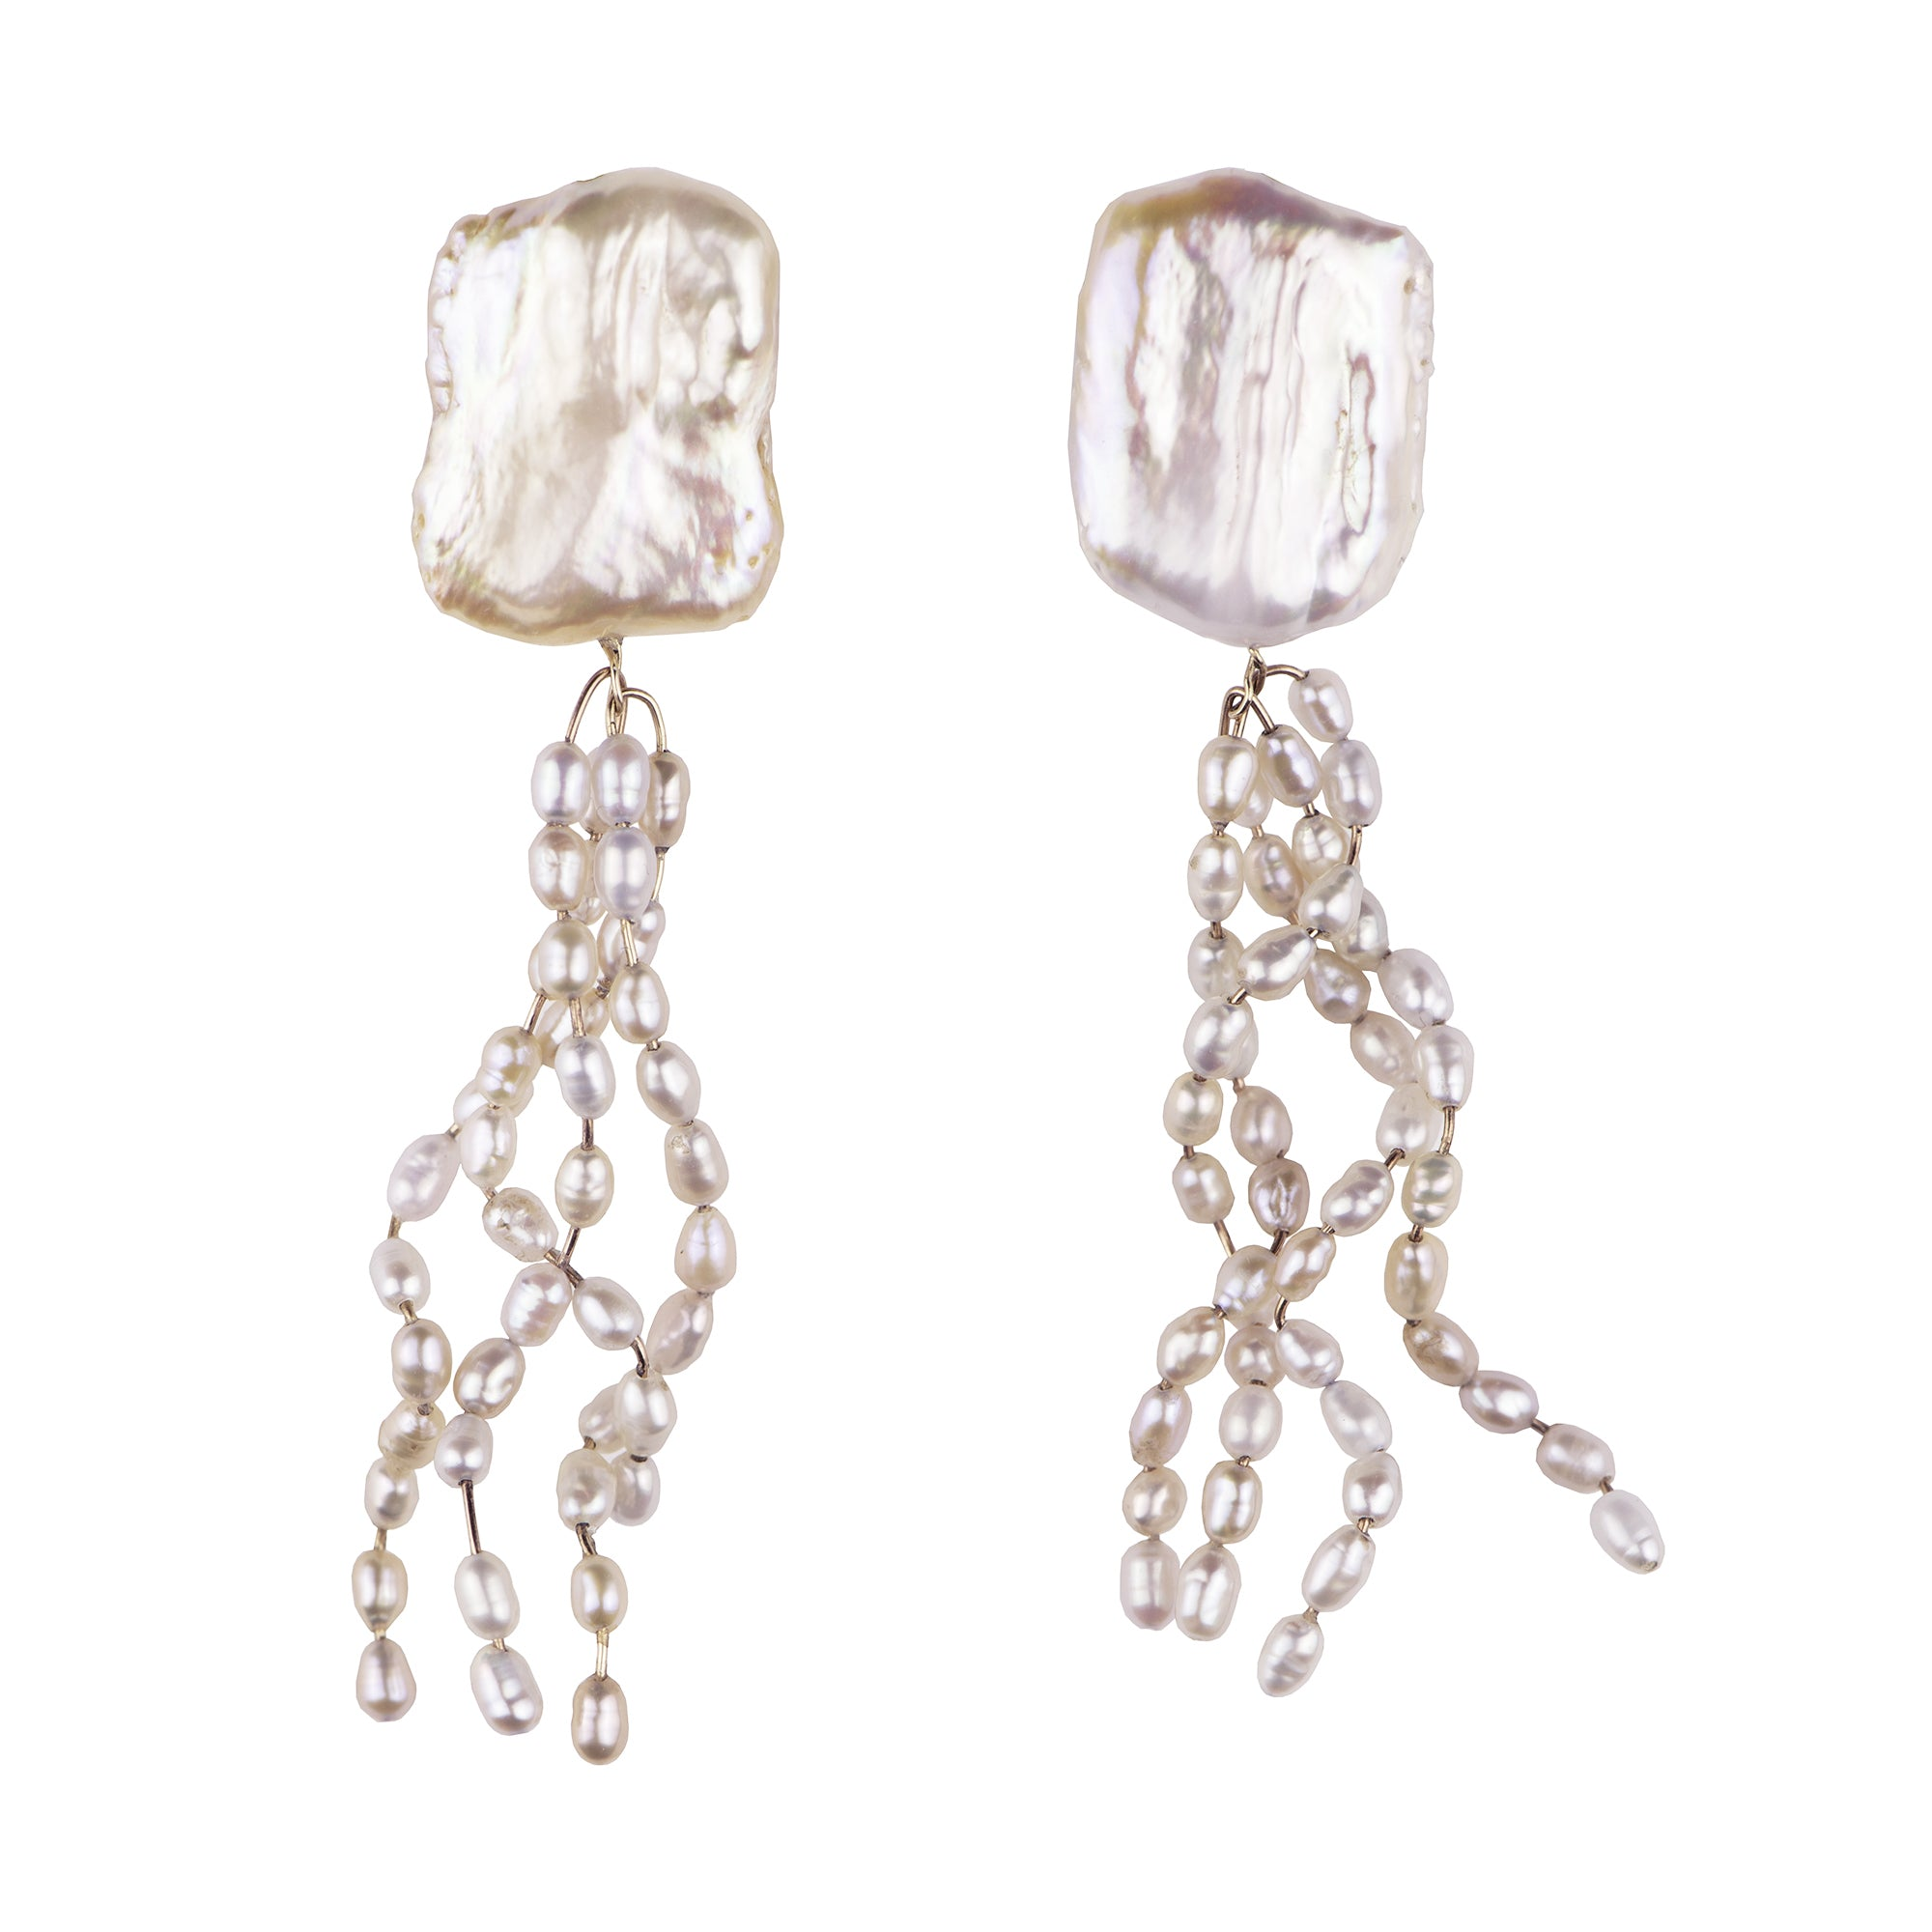 The Box Jelly Pearl Earring, LeBlanc jewellery